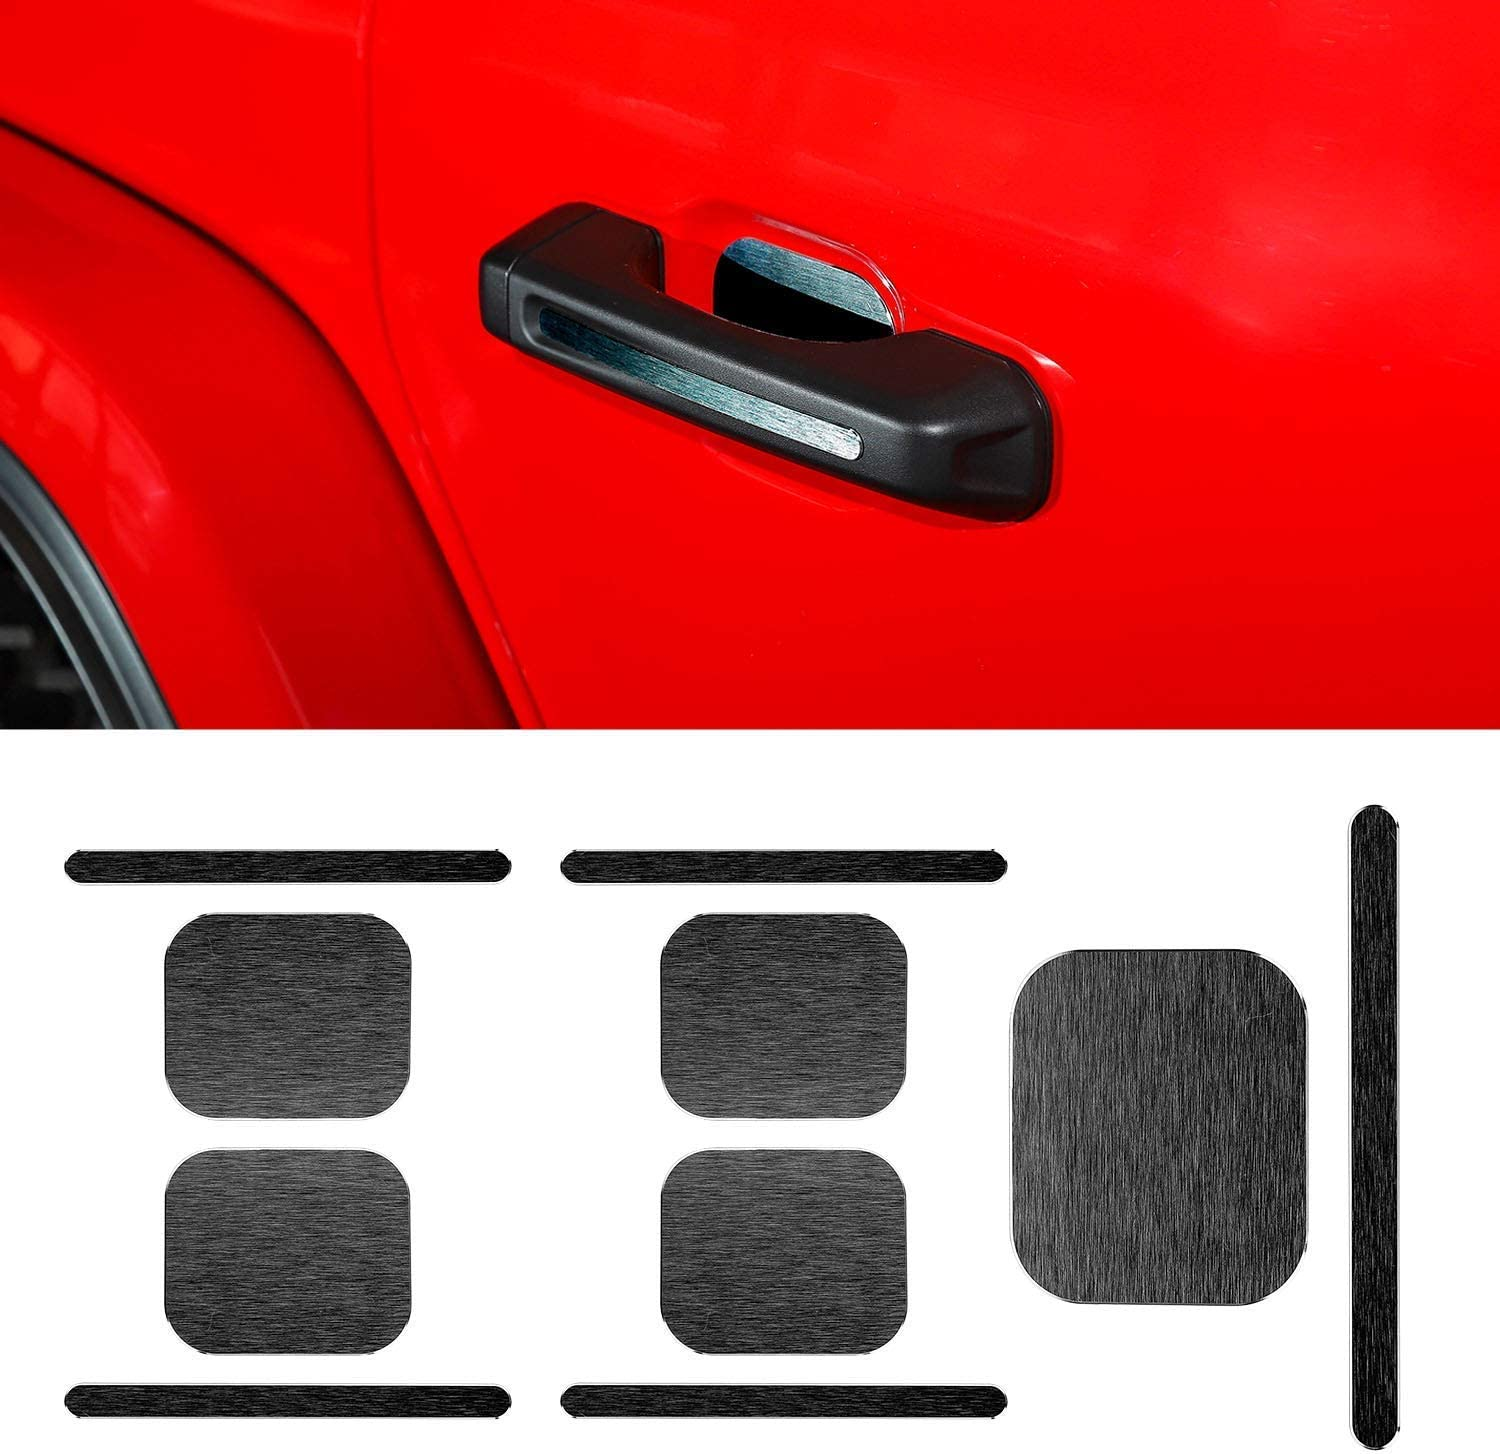 Red) 2018 for Jeep Wrangler JL Door Handle Inserts Cover Trim for 2018 Jeep Wrangler JL Unlimited